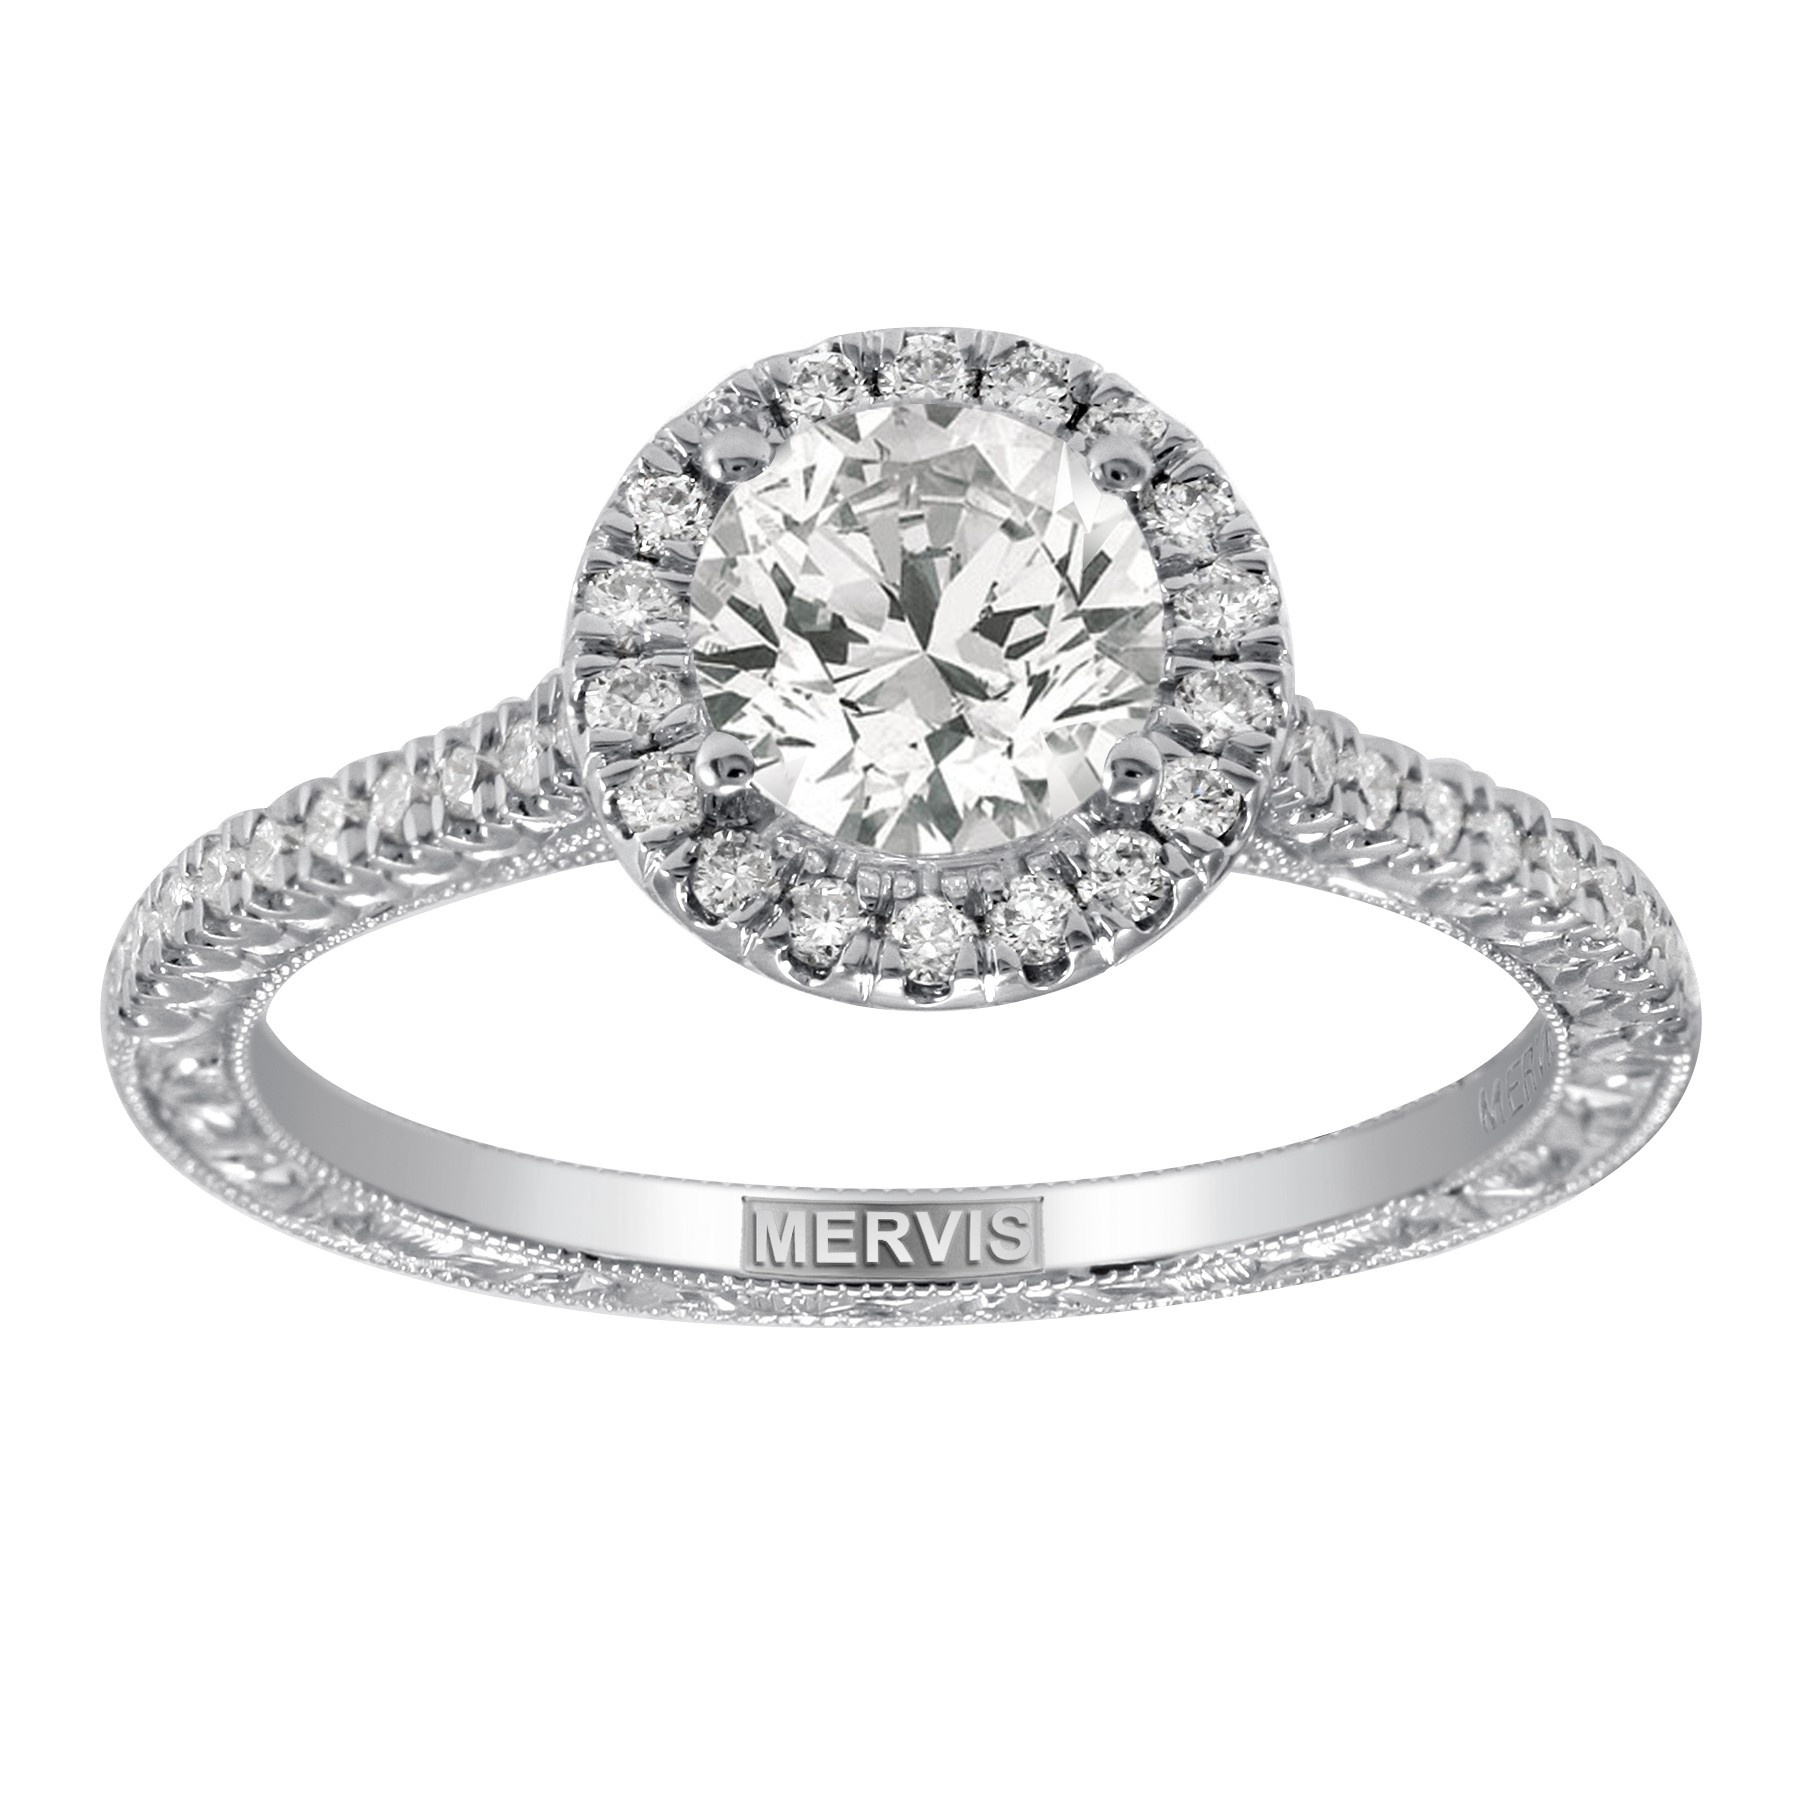 Mervis Bridal Micropave Platinum Hand Engraved Engagement Ring